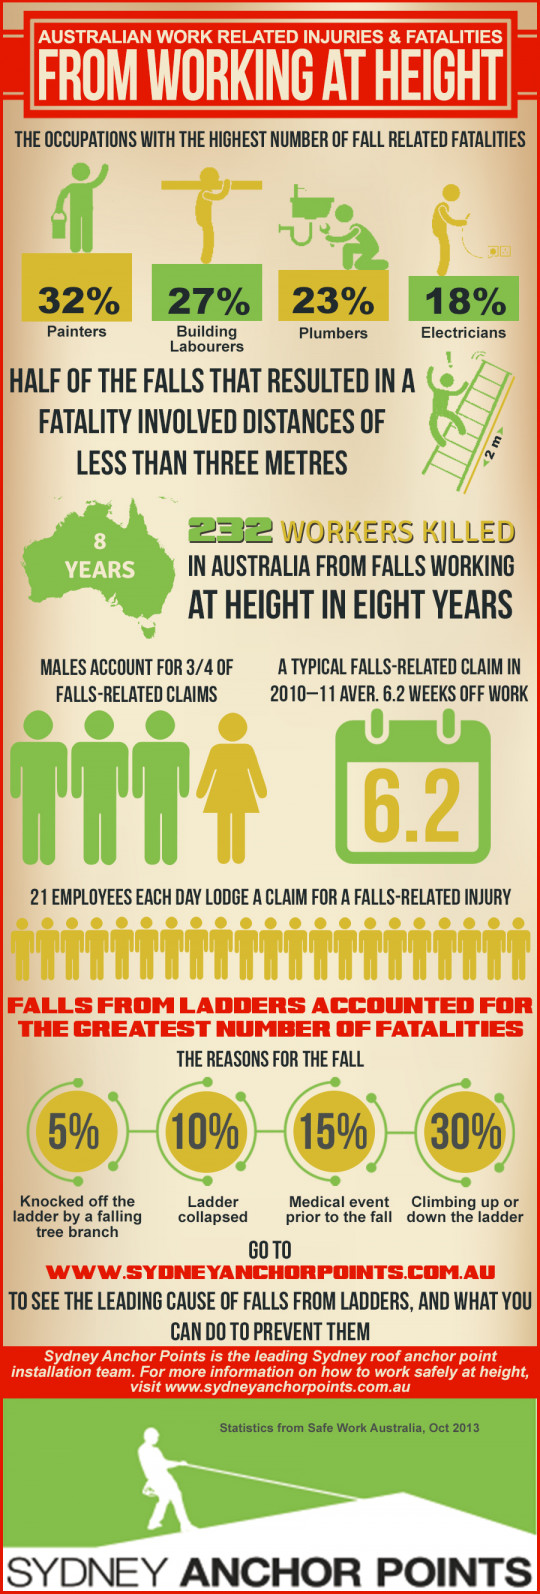 Australian Work Related Injuries & Fatalities From Working At Height